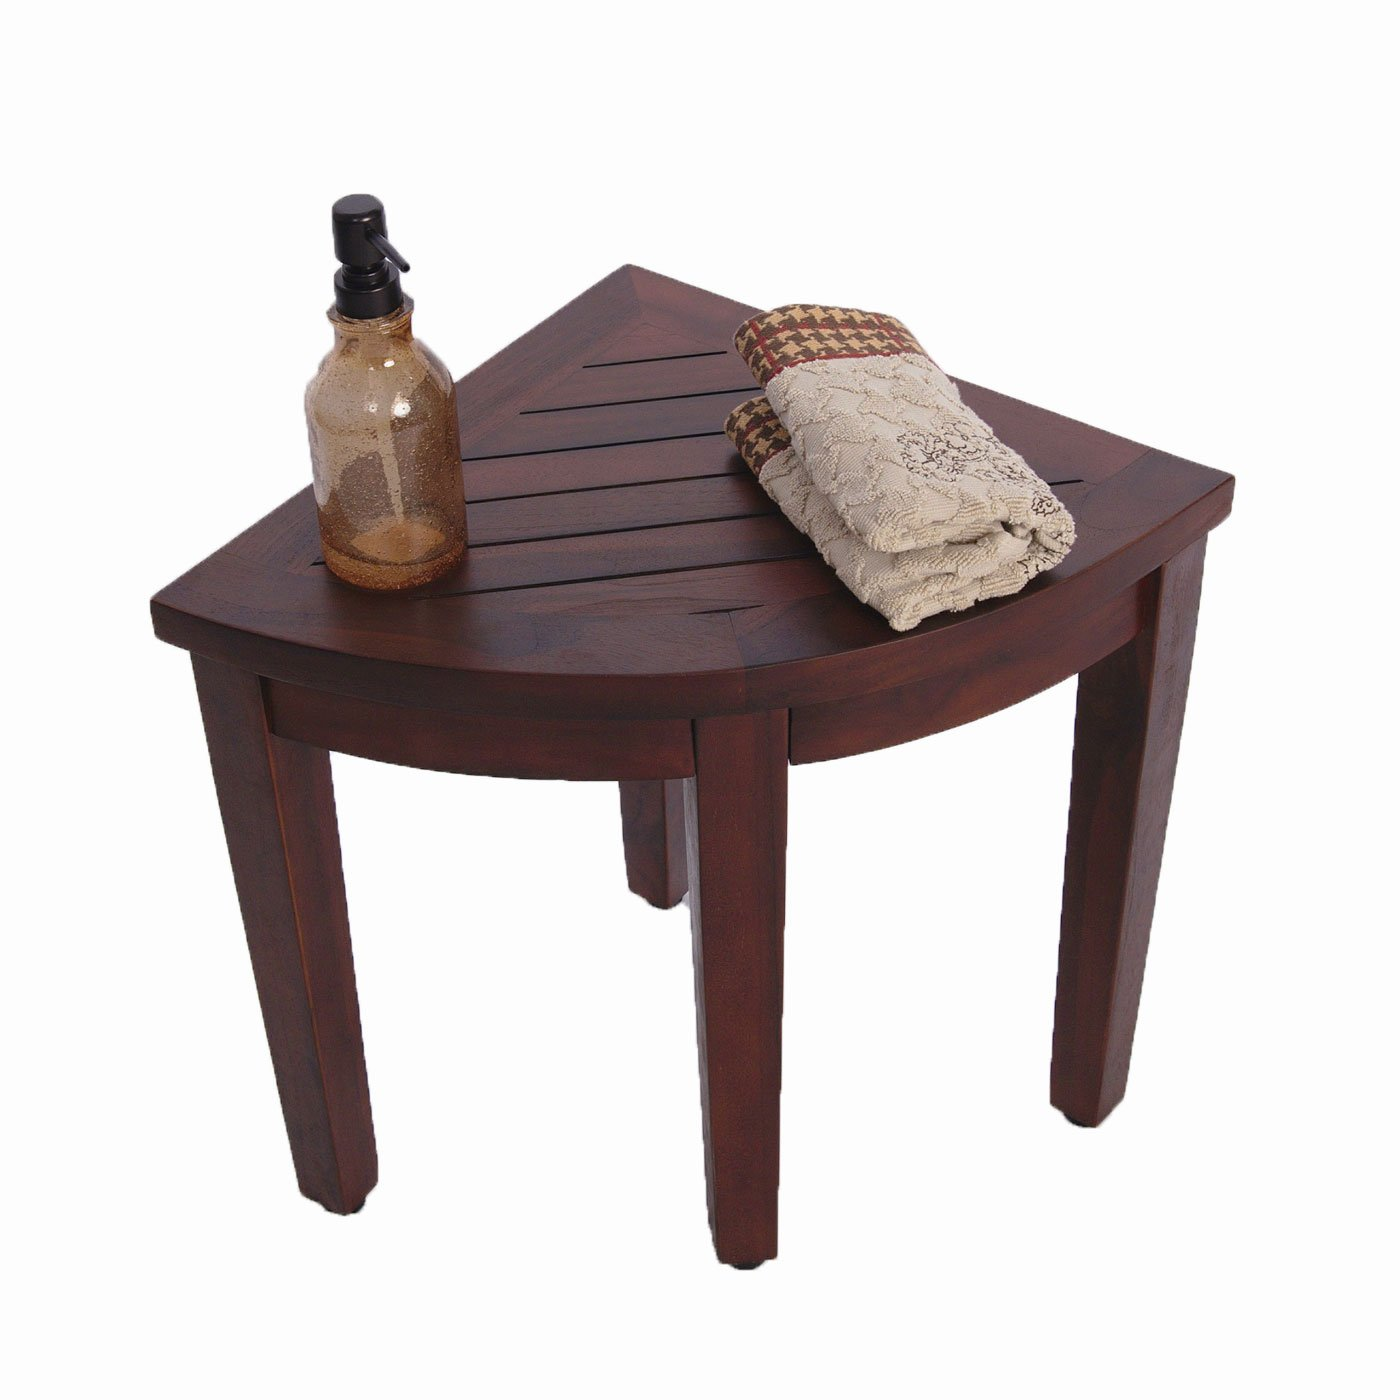 Oasis Teak Corner Shower Bench(Fully Assembled)- 15.5''- Sitting, Storage, Shaving- Adjustable Foot Pads